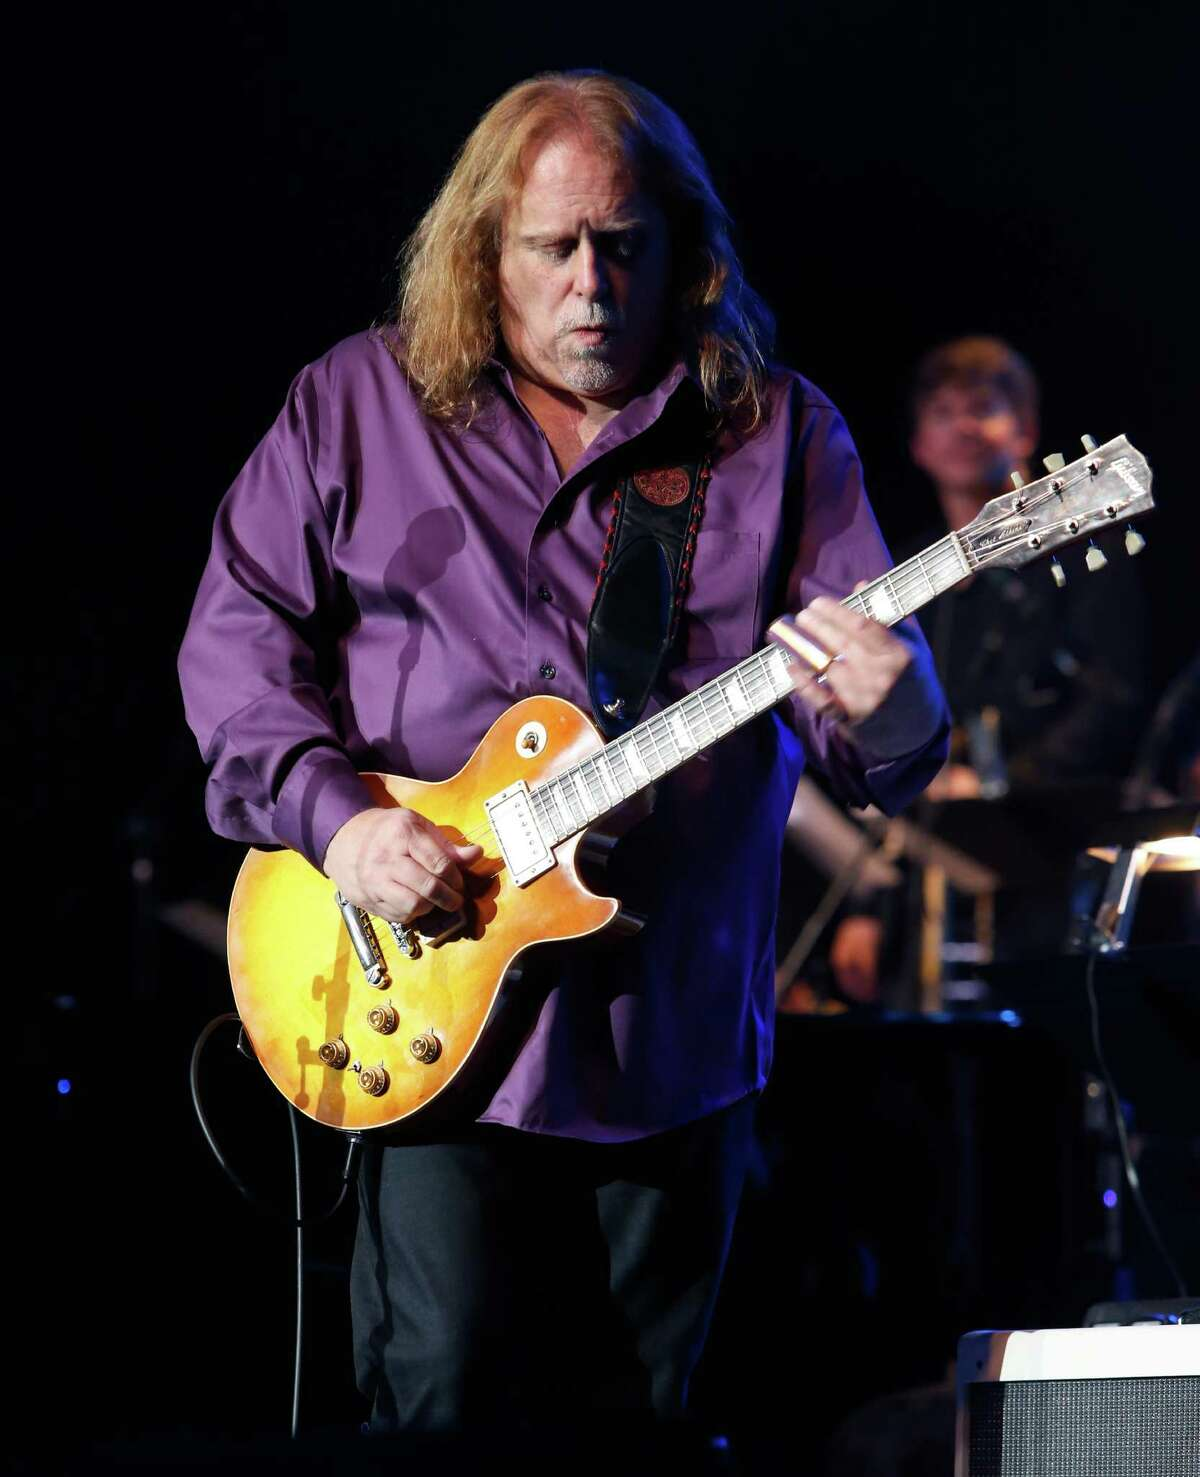 Warren Haynes at South Farms, Morris - Surprise! Gov't Mule frontman Warren Haynes has added another show to close out the Twilight Concerts on the Farm series with a special afternoon set on Sunday. Find out more.